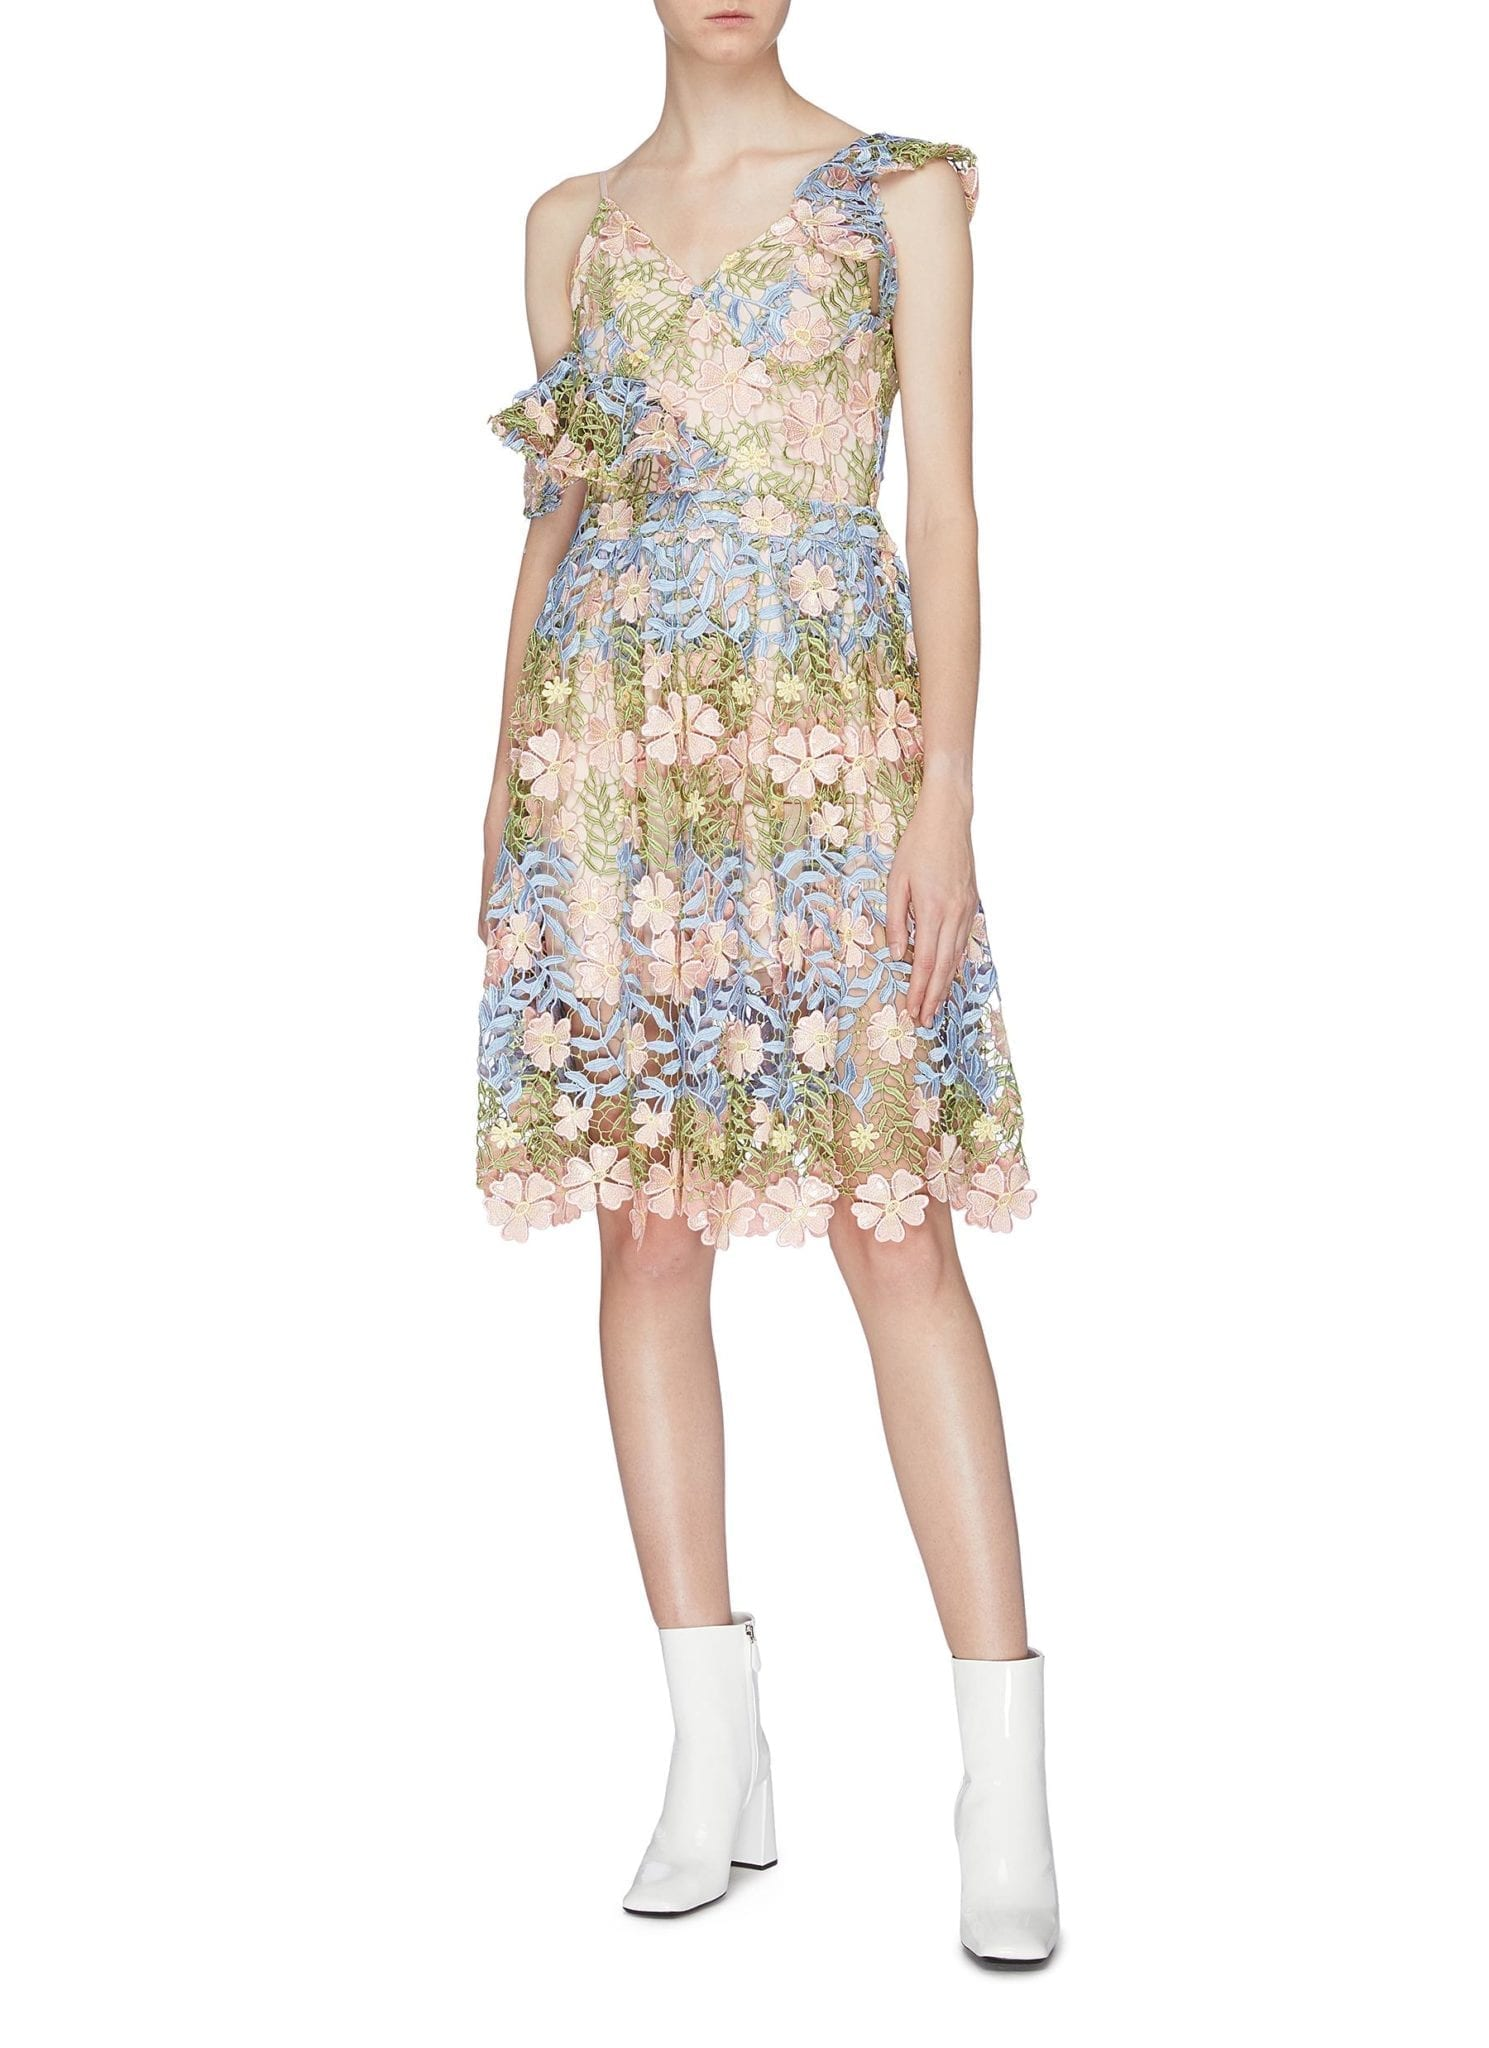 JONATHAN LIANG Asymmetric Cold Shoulder Floral Embroidered Dress